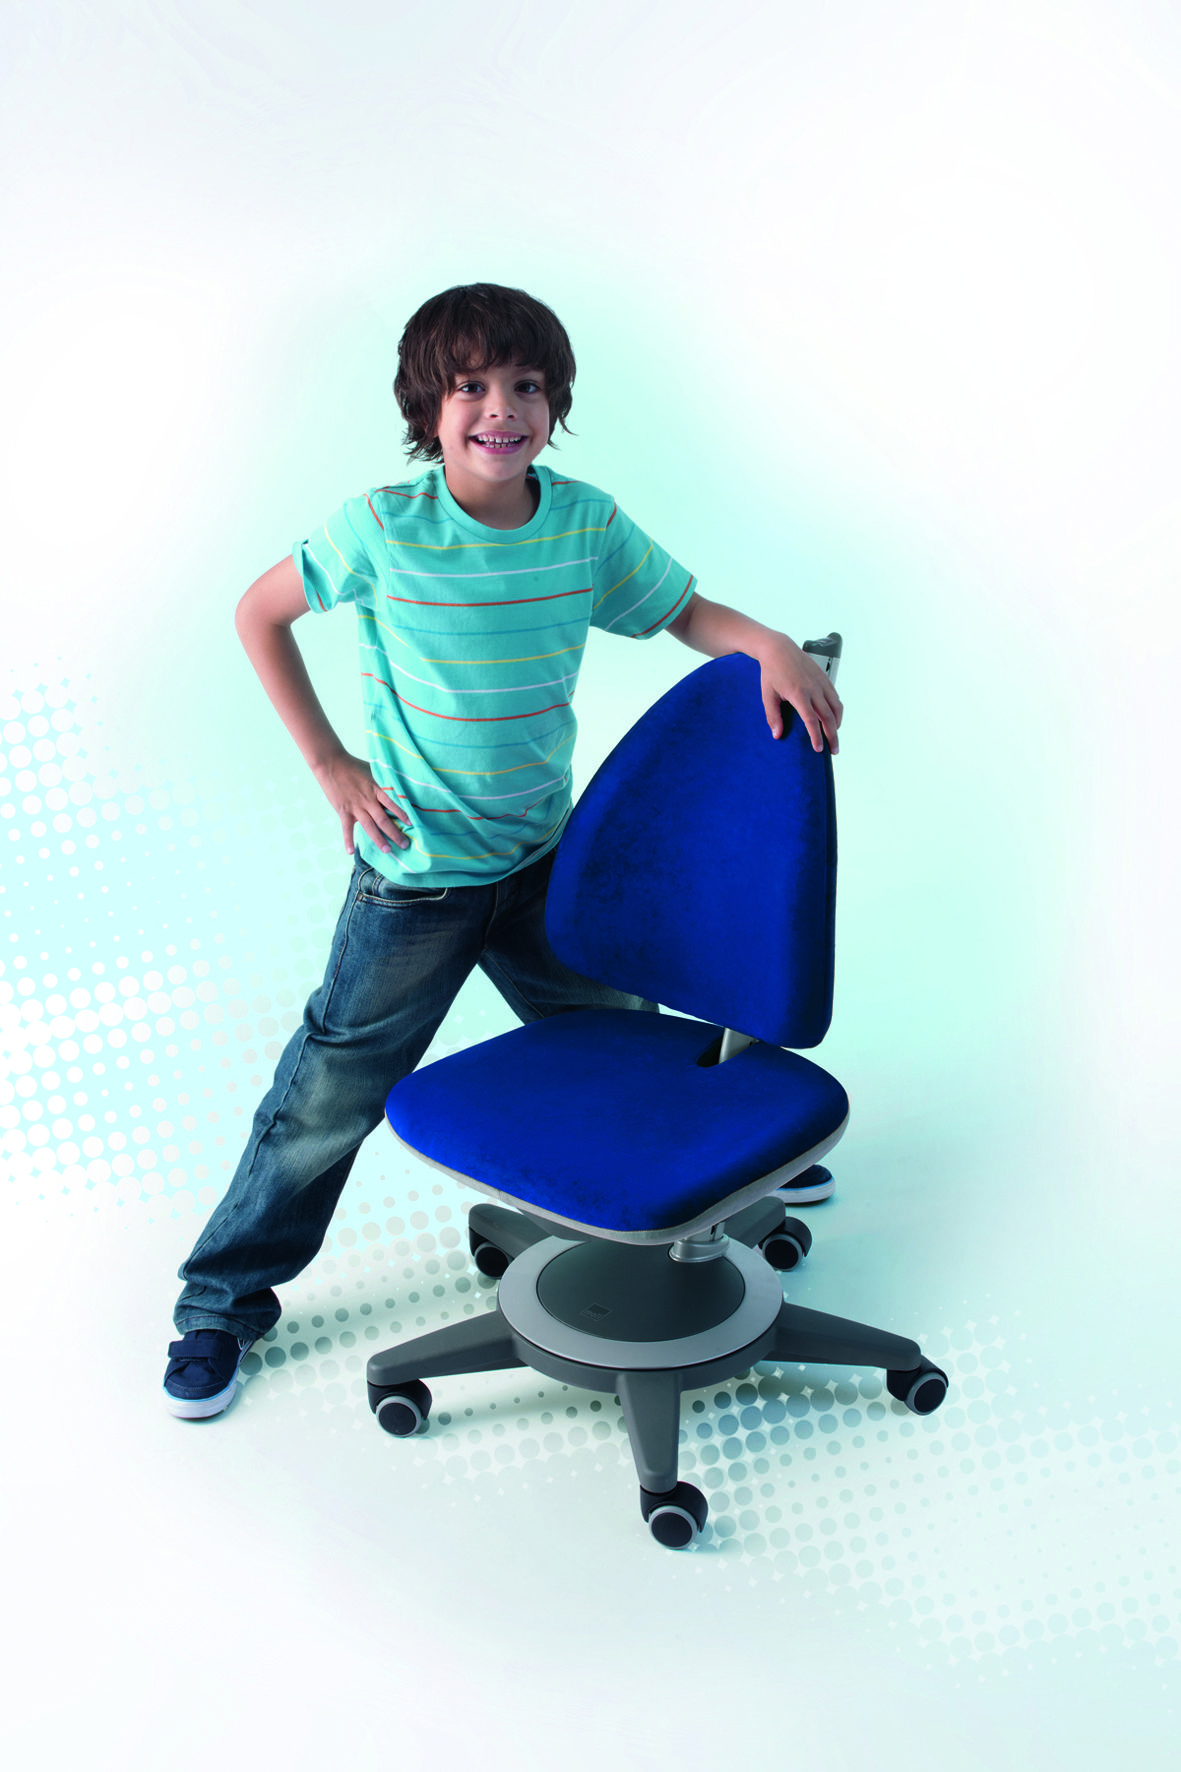 Moll Maximo Ergonomic Children Chair Fully Adjule Seat And Backrest In Both Depth Height For Optimal Fit